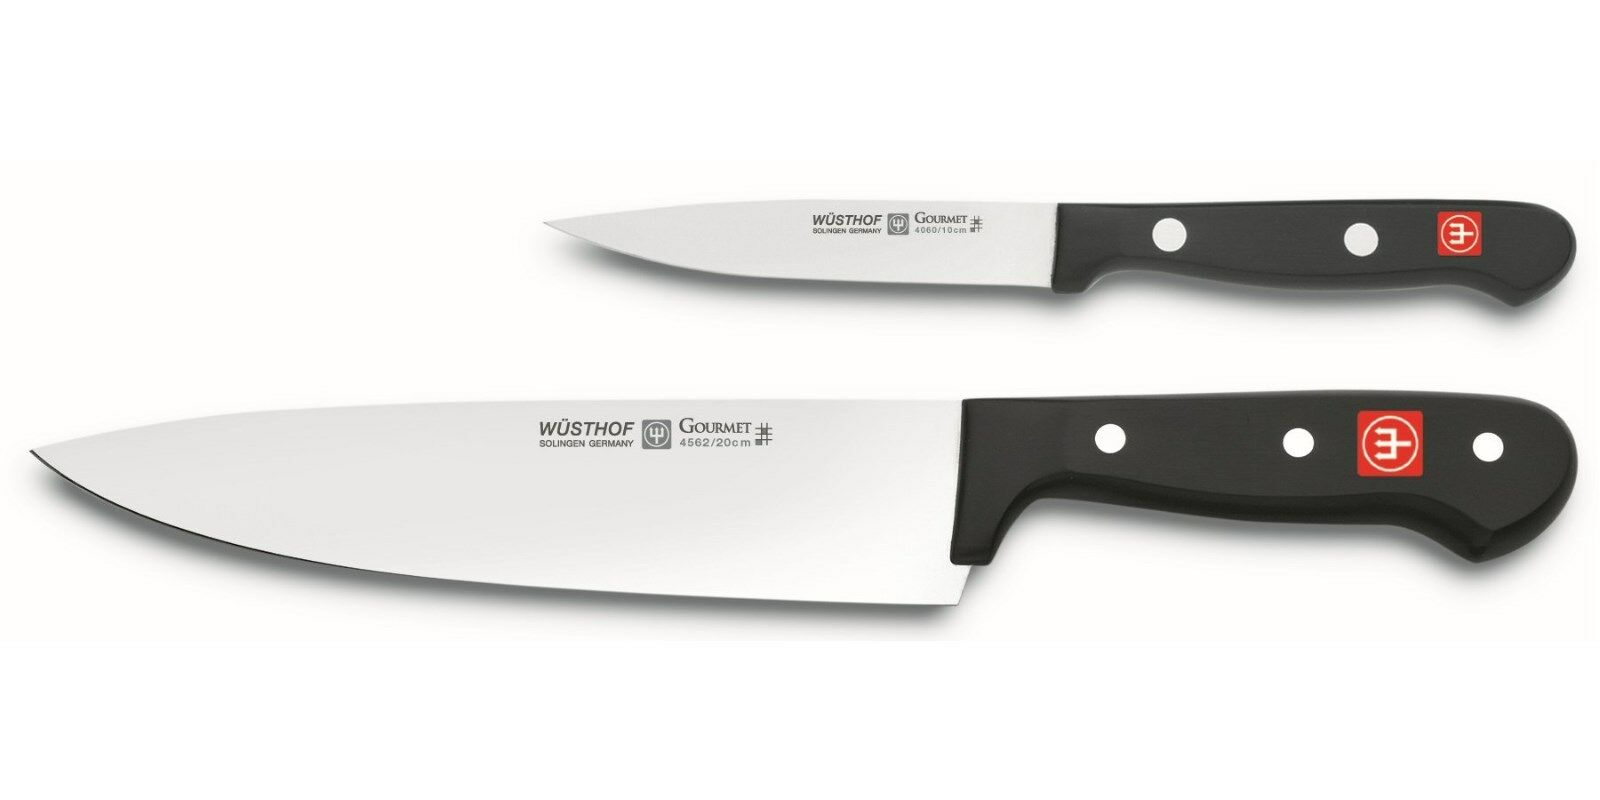 Wusthof Gourmet 2pc Starter Knife Set - 8  Cook's Cook's Cook's & 4  Utility   Paring f58da8